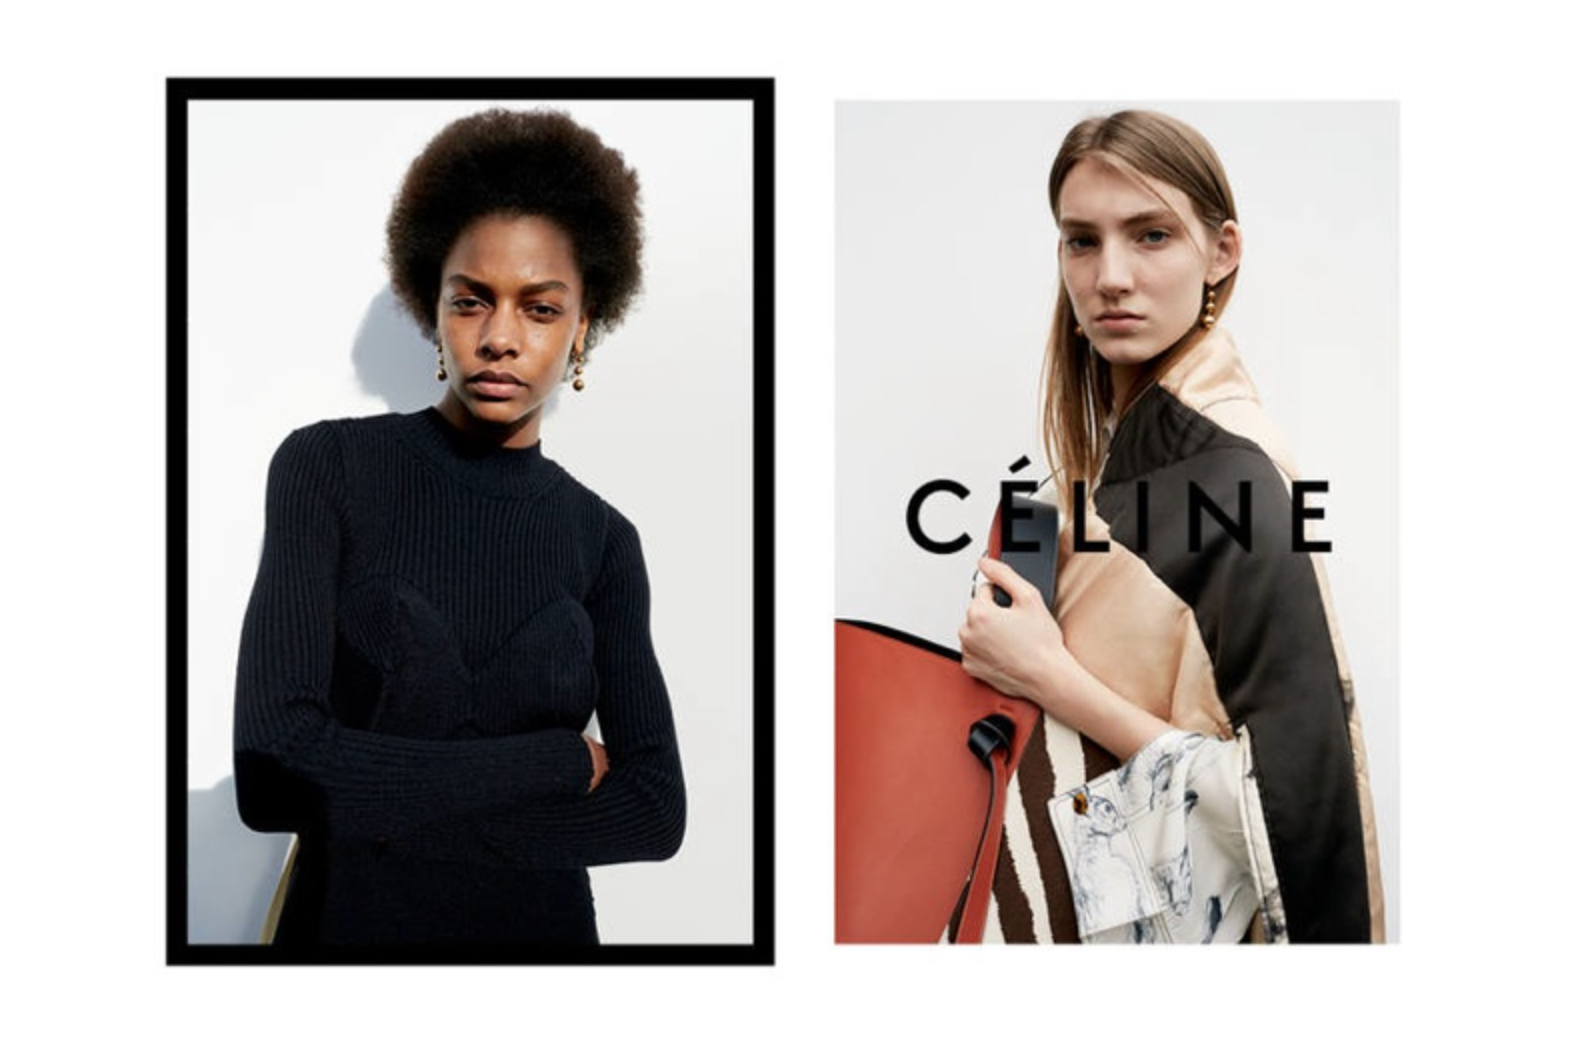 Celine Winter Campaign 2015 by Juergen Teller